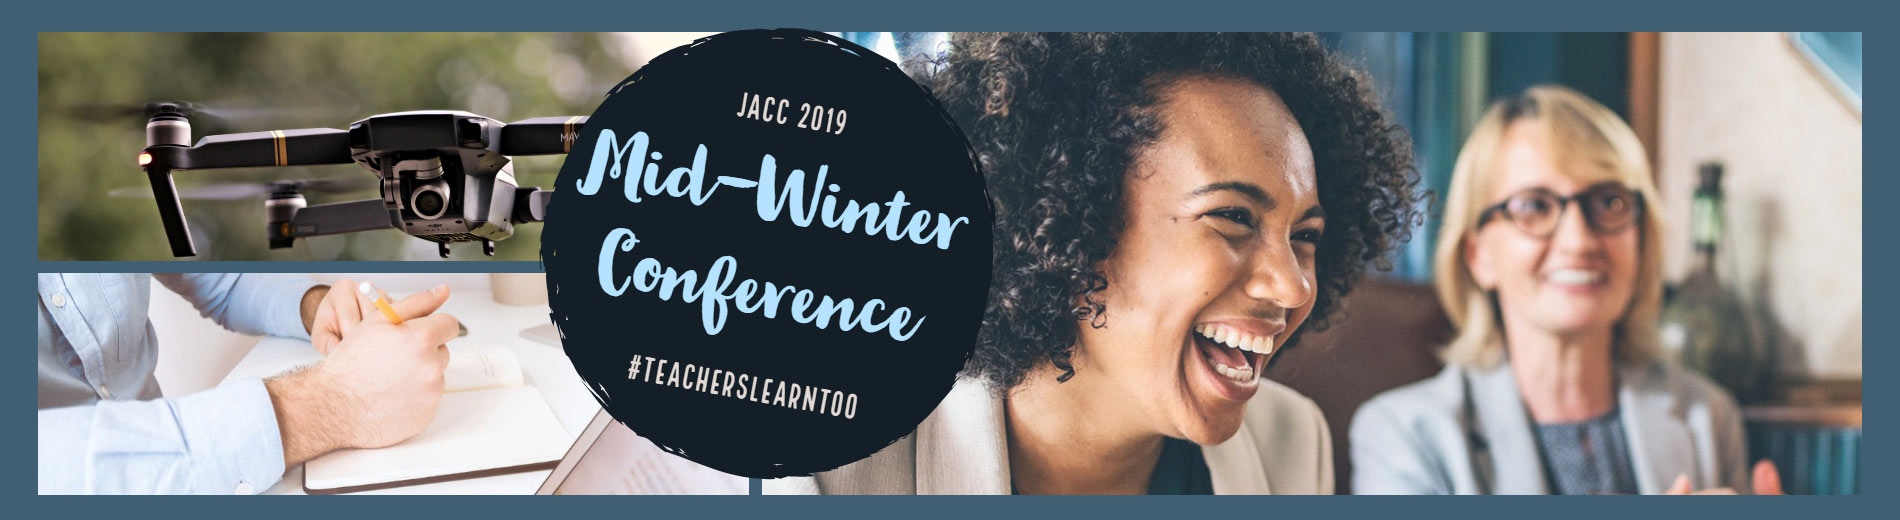 Faculty, advisers and staff: Register today for the Mid-Winter Conference, Feb. 22-24, 2019 in Cambria.